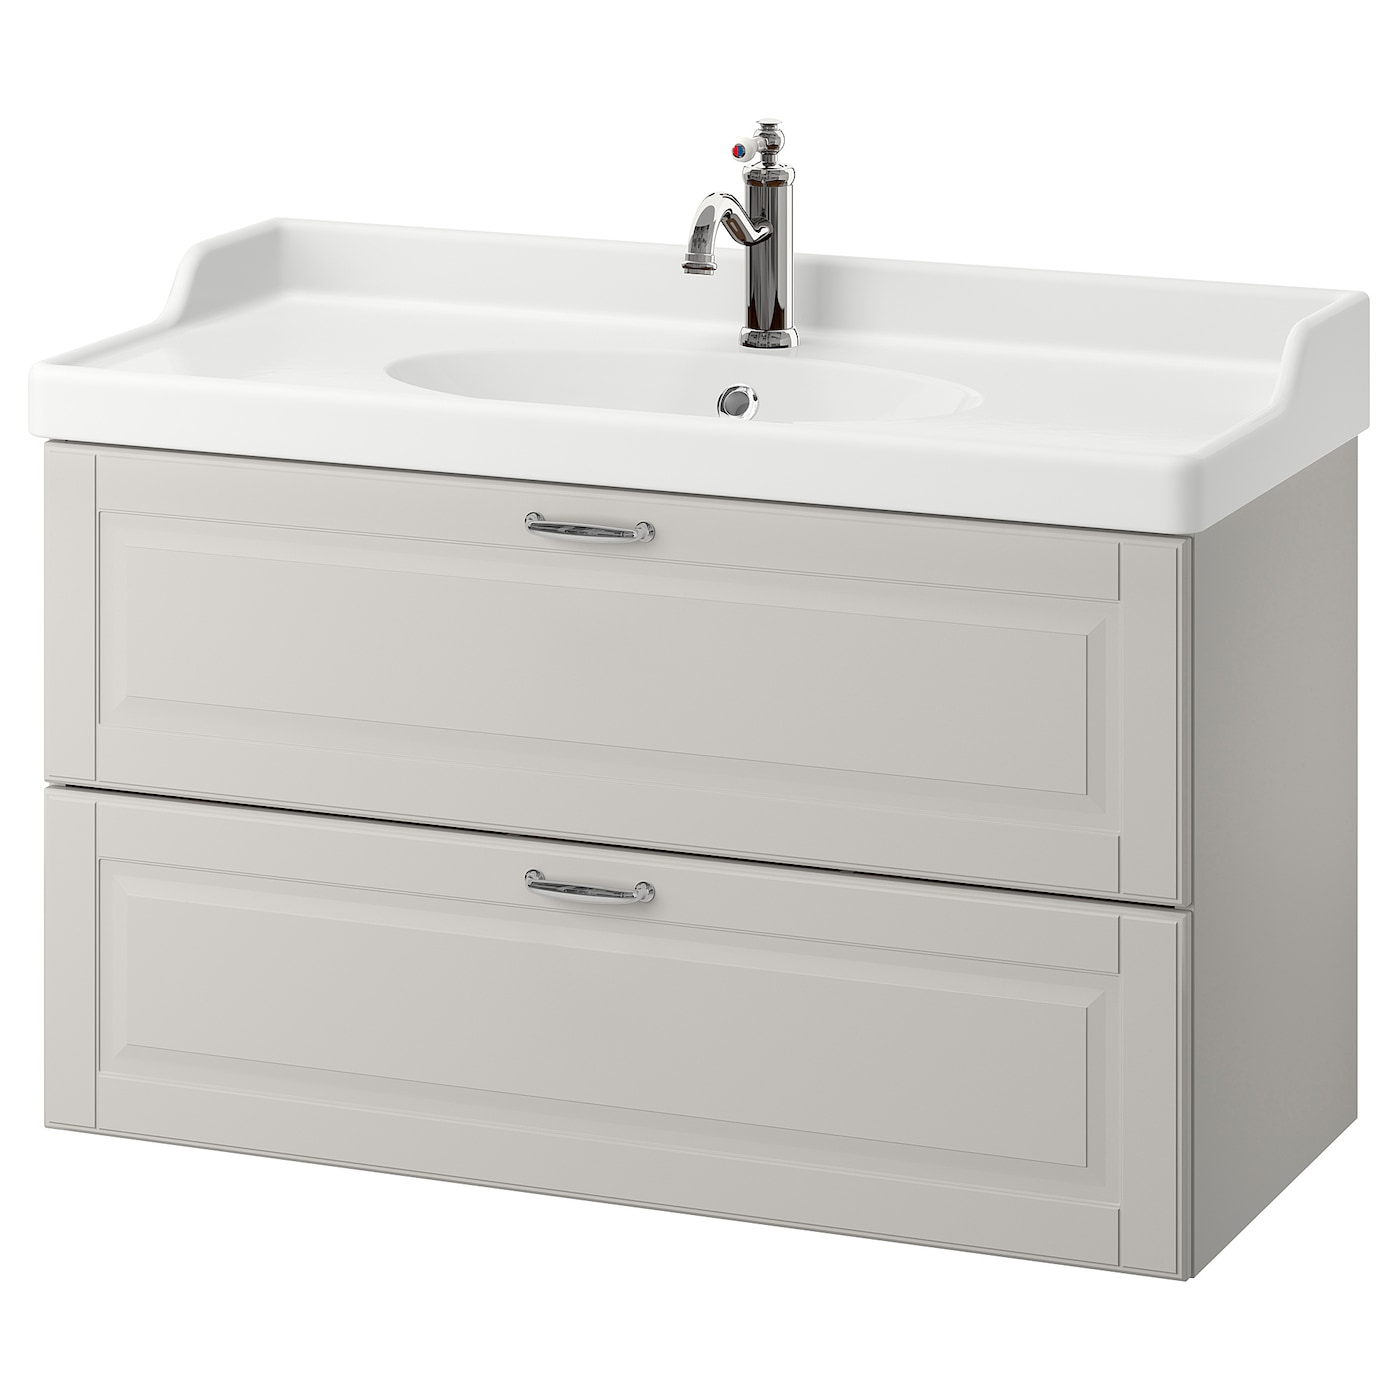 godmorgon r ttviken meuble lavabo 2tir kasj n gris clair 100x49x68 cm ikea. Black Bedroom Furniture Sets. Home Design Ideas